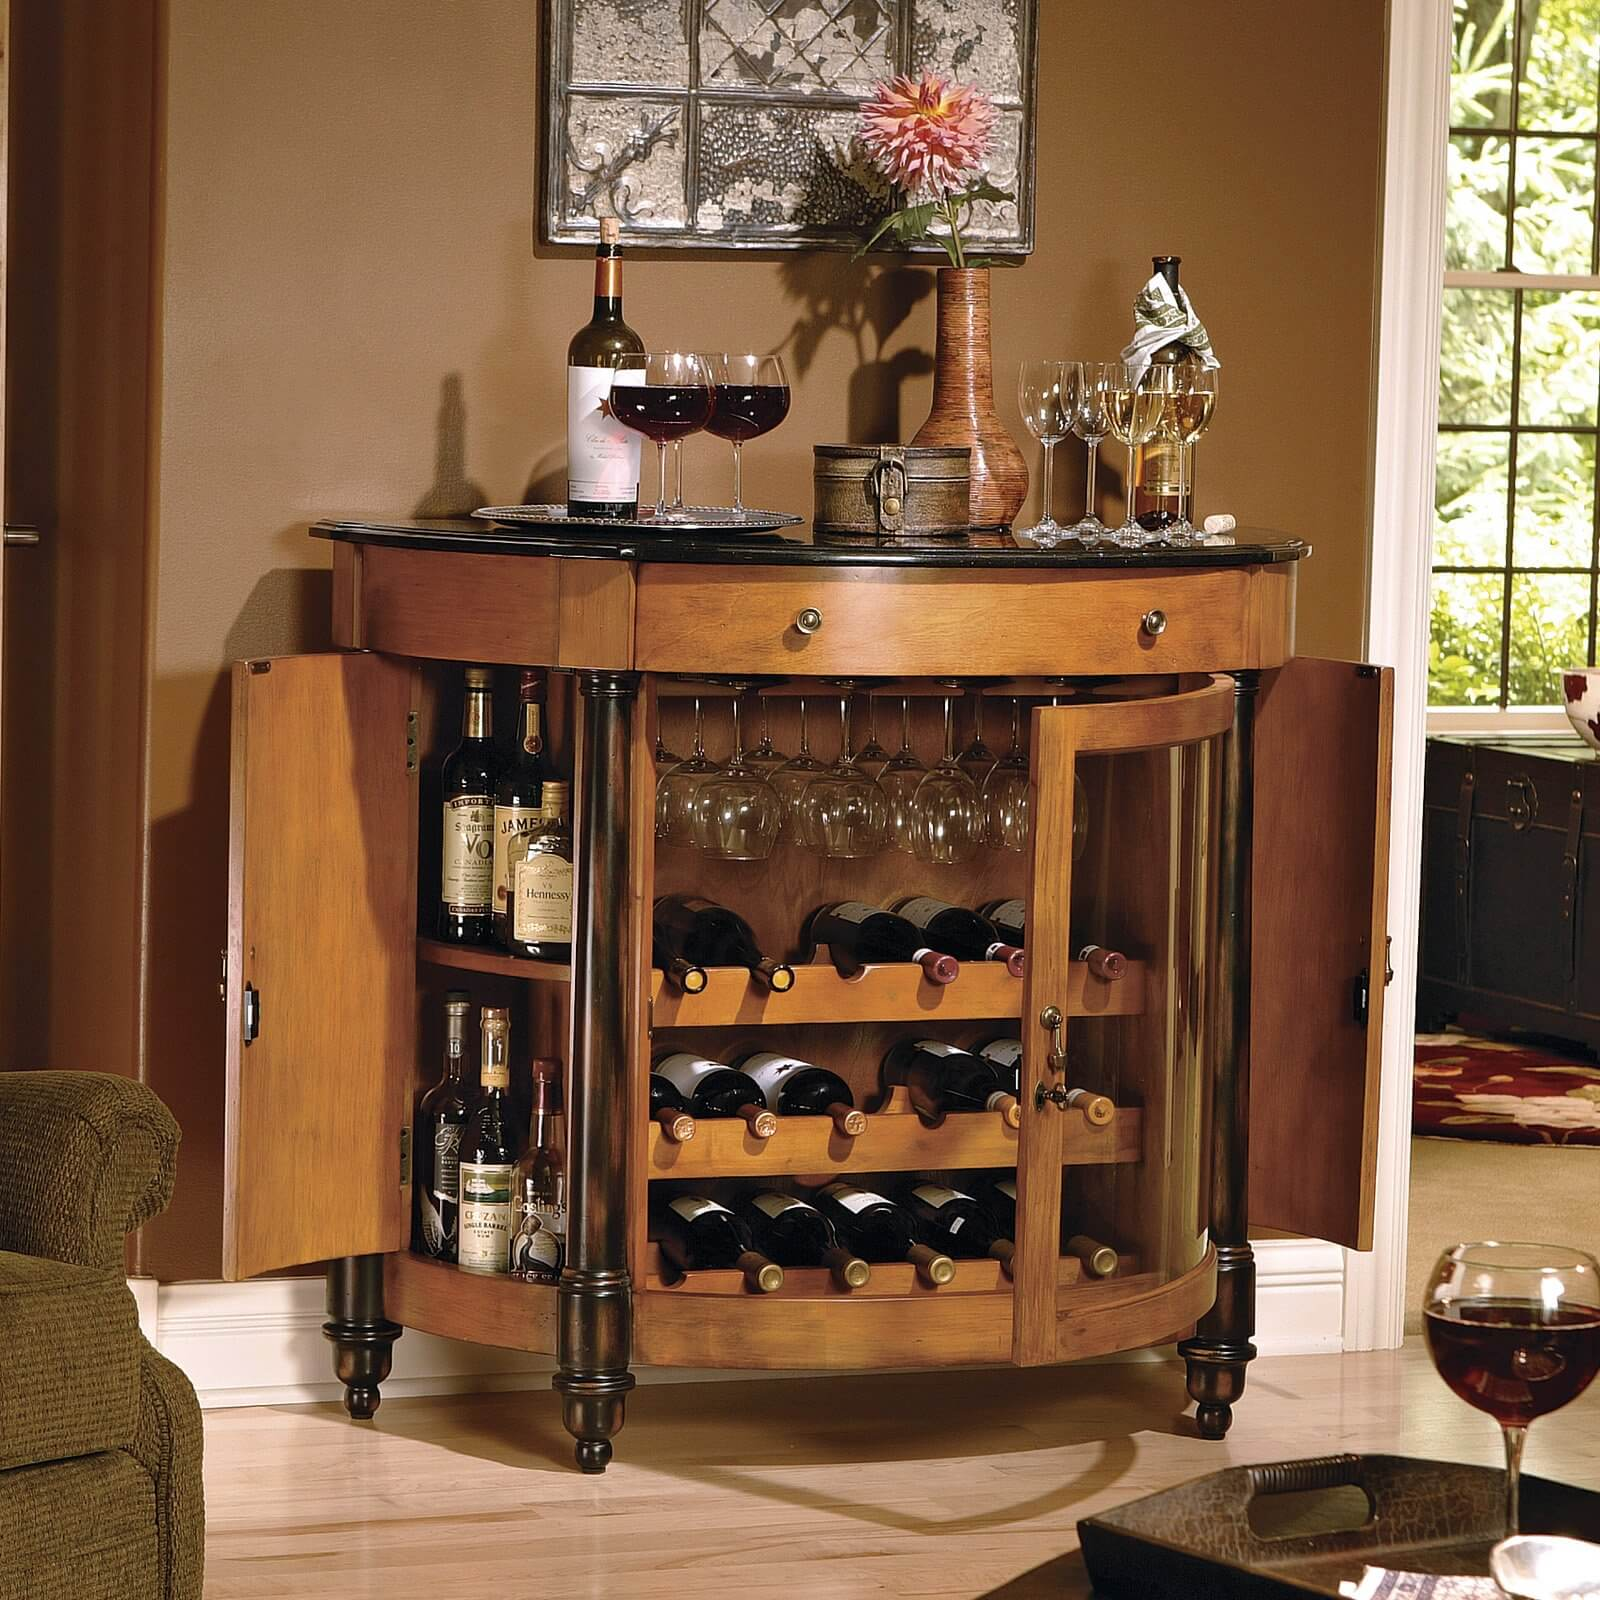 in home bars design. Here s a home bar for wine lovers with it 18 bottle rack  80 Top Home Bar Cabinets Sets Wine Bars 2017